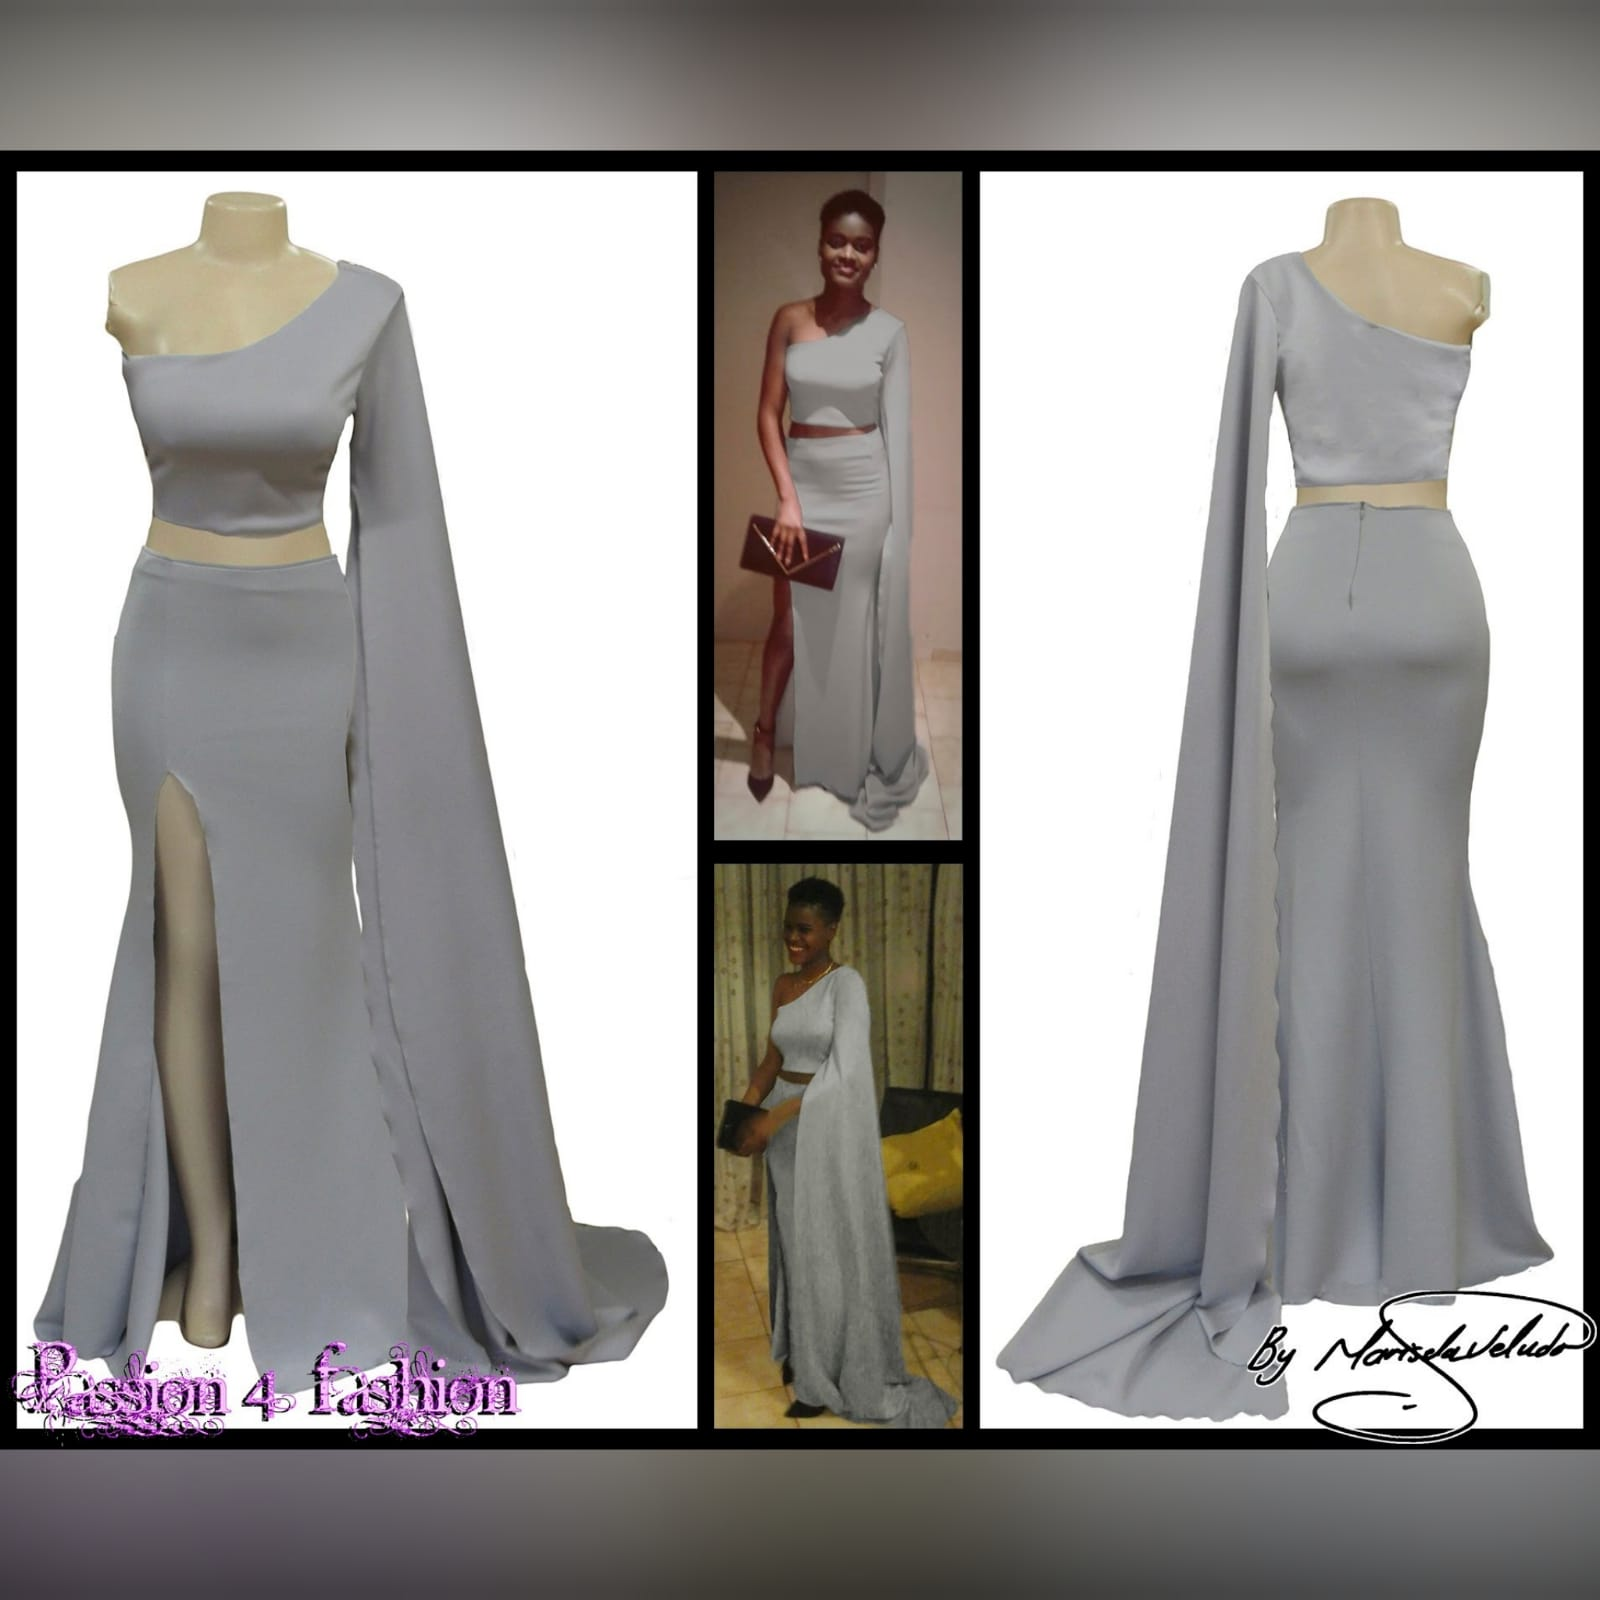 2 piece light grey prom dress 4 2 piece light grey prom dress, crop top with a single shoulder and a long wide sleeve creating a train. With a fitted long skirt, with a high slit.